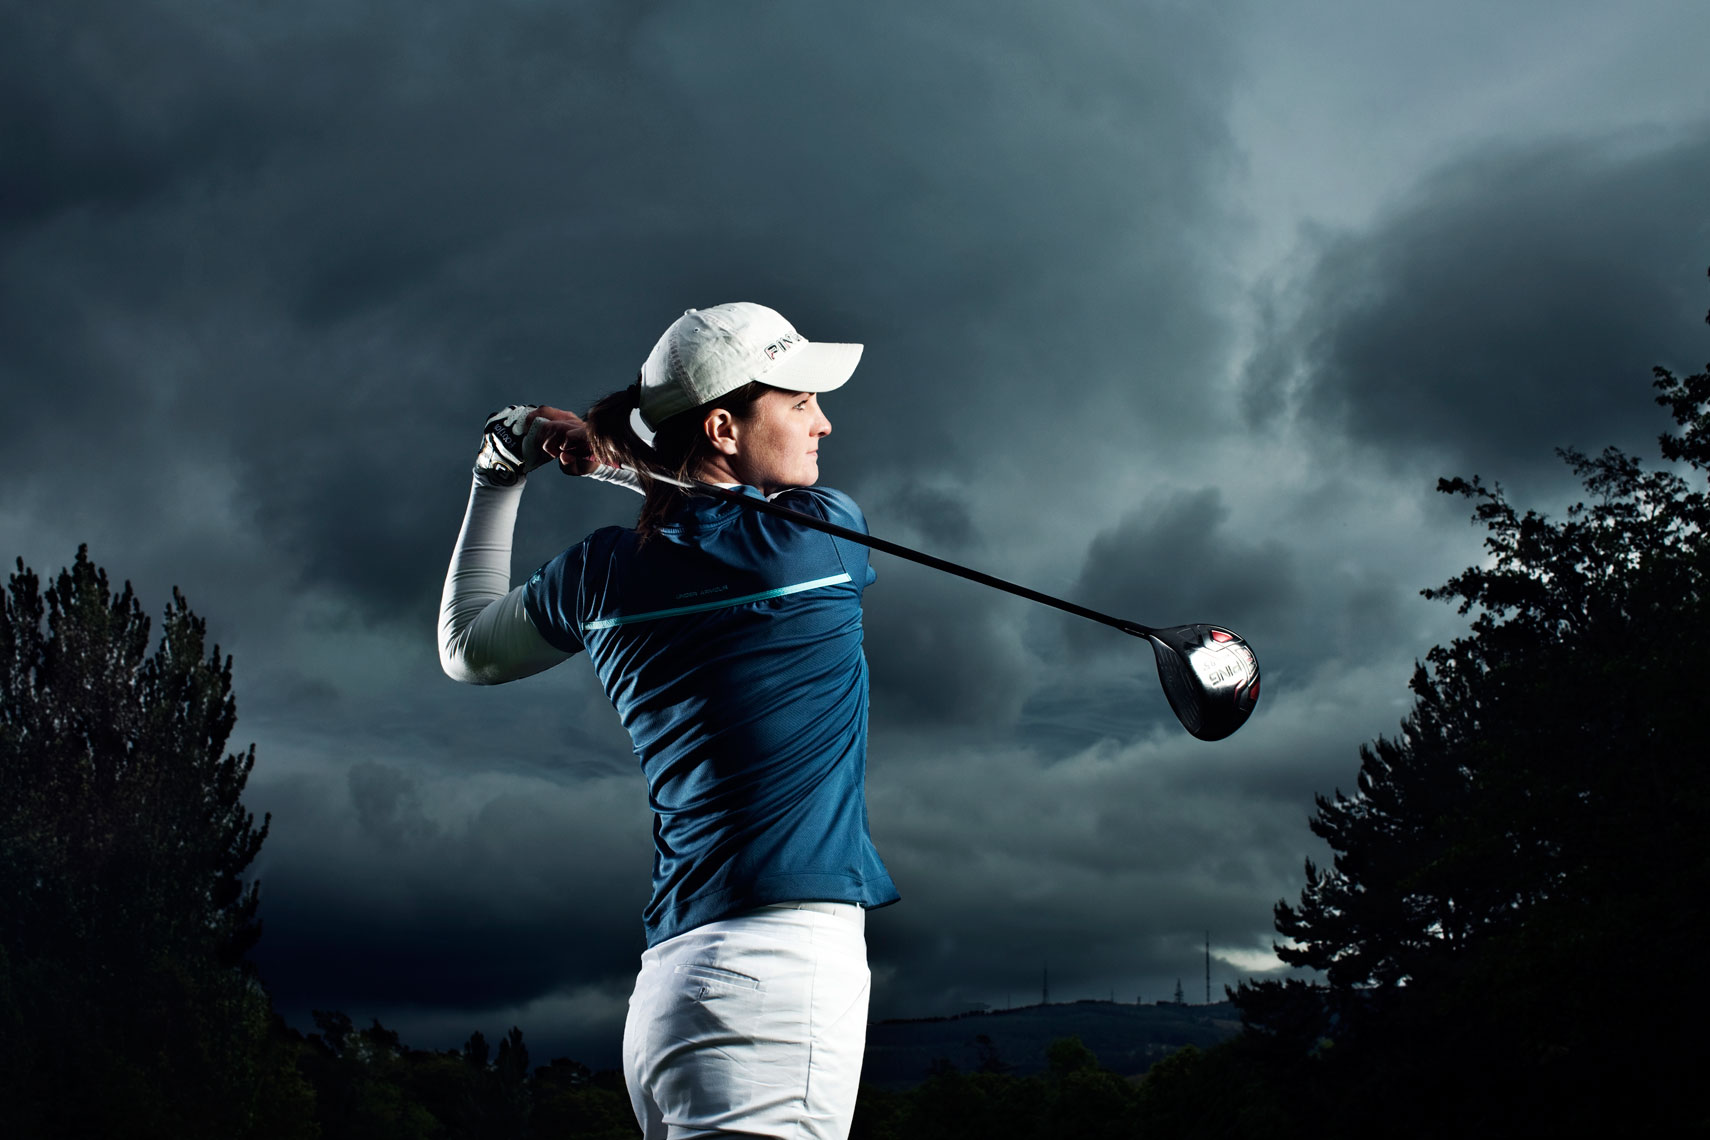 dramatic portrait of golfer mid swing